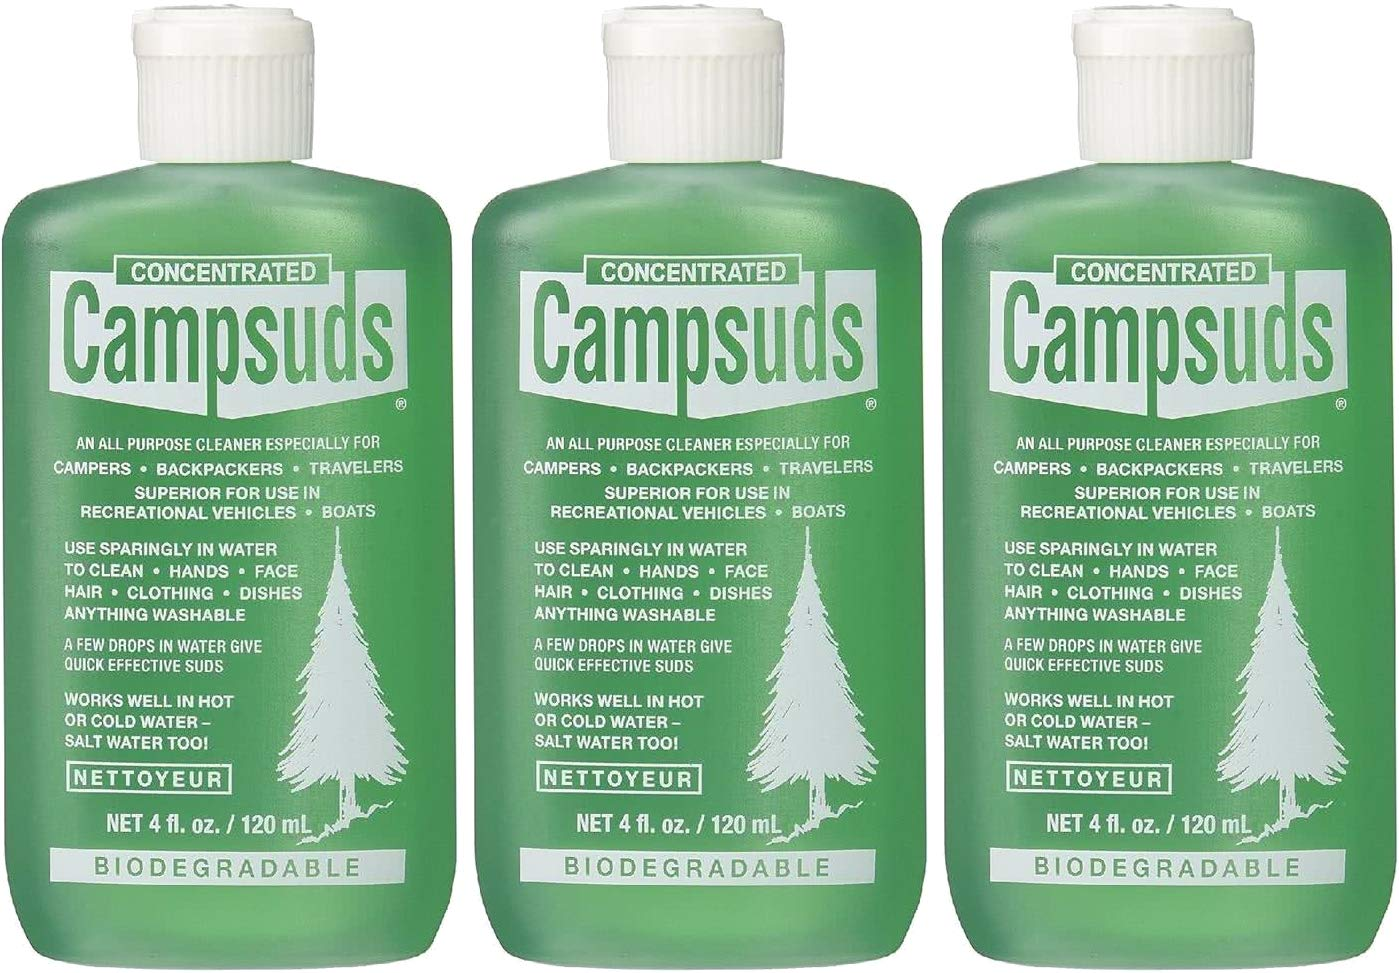 Sierra Dawn Campsuds Outdoor Soap Biodegradable Environmentally Safe All Purpose Cleaner, Camping Hiking Backpacking Travel Camp, Multipurpose for Dishes Shower Hand Shampoo (4-Ounce, 3 Bottles)